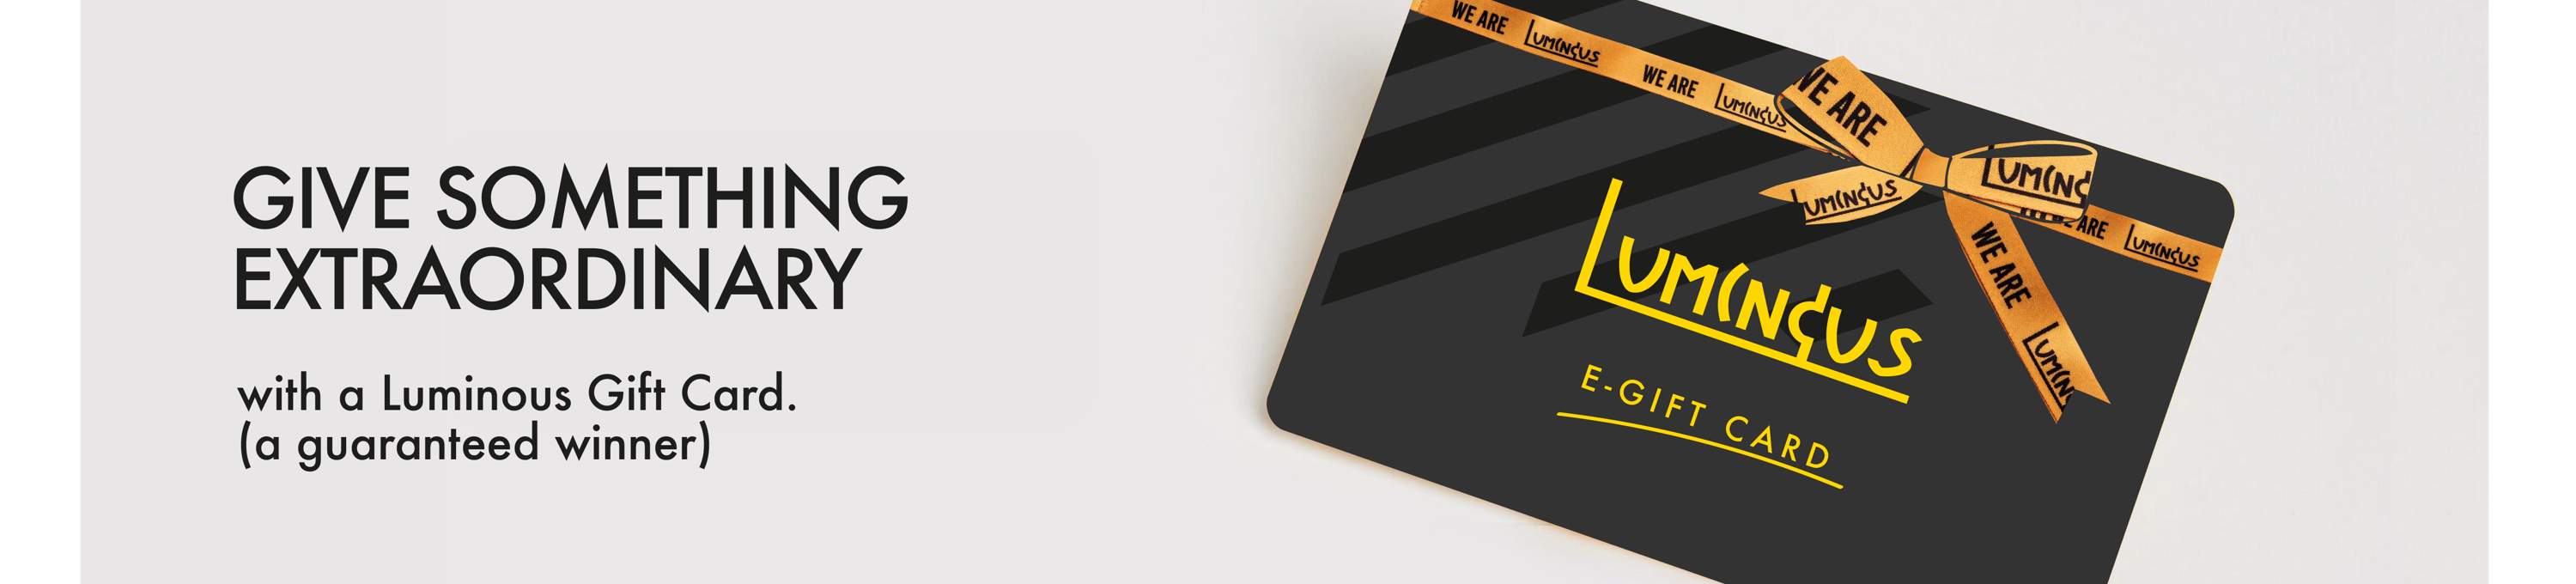 Give Something Extraordinary - with a Luminous Gift Card. (a guaranteed winner)